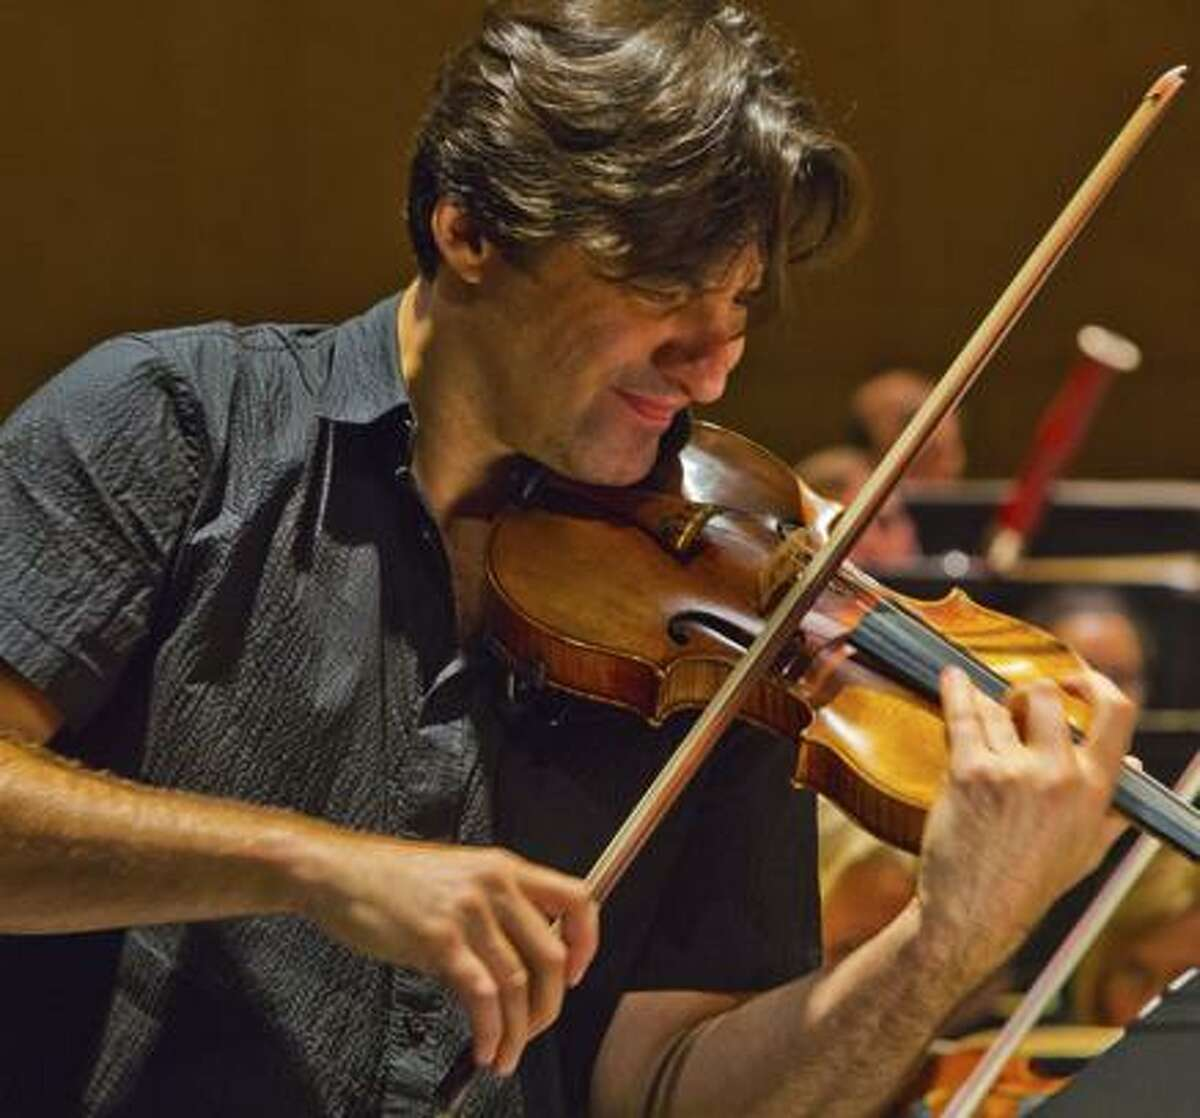 Philippe Quint played violin with a soulful suaveness.